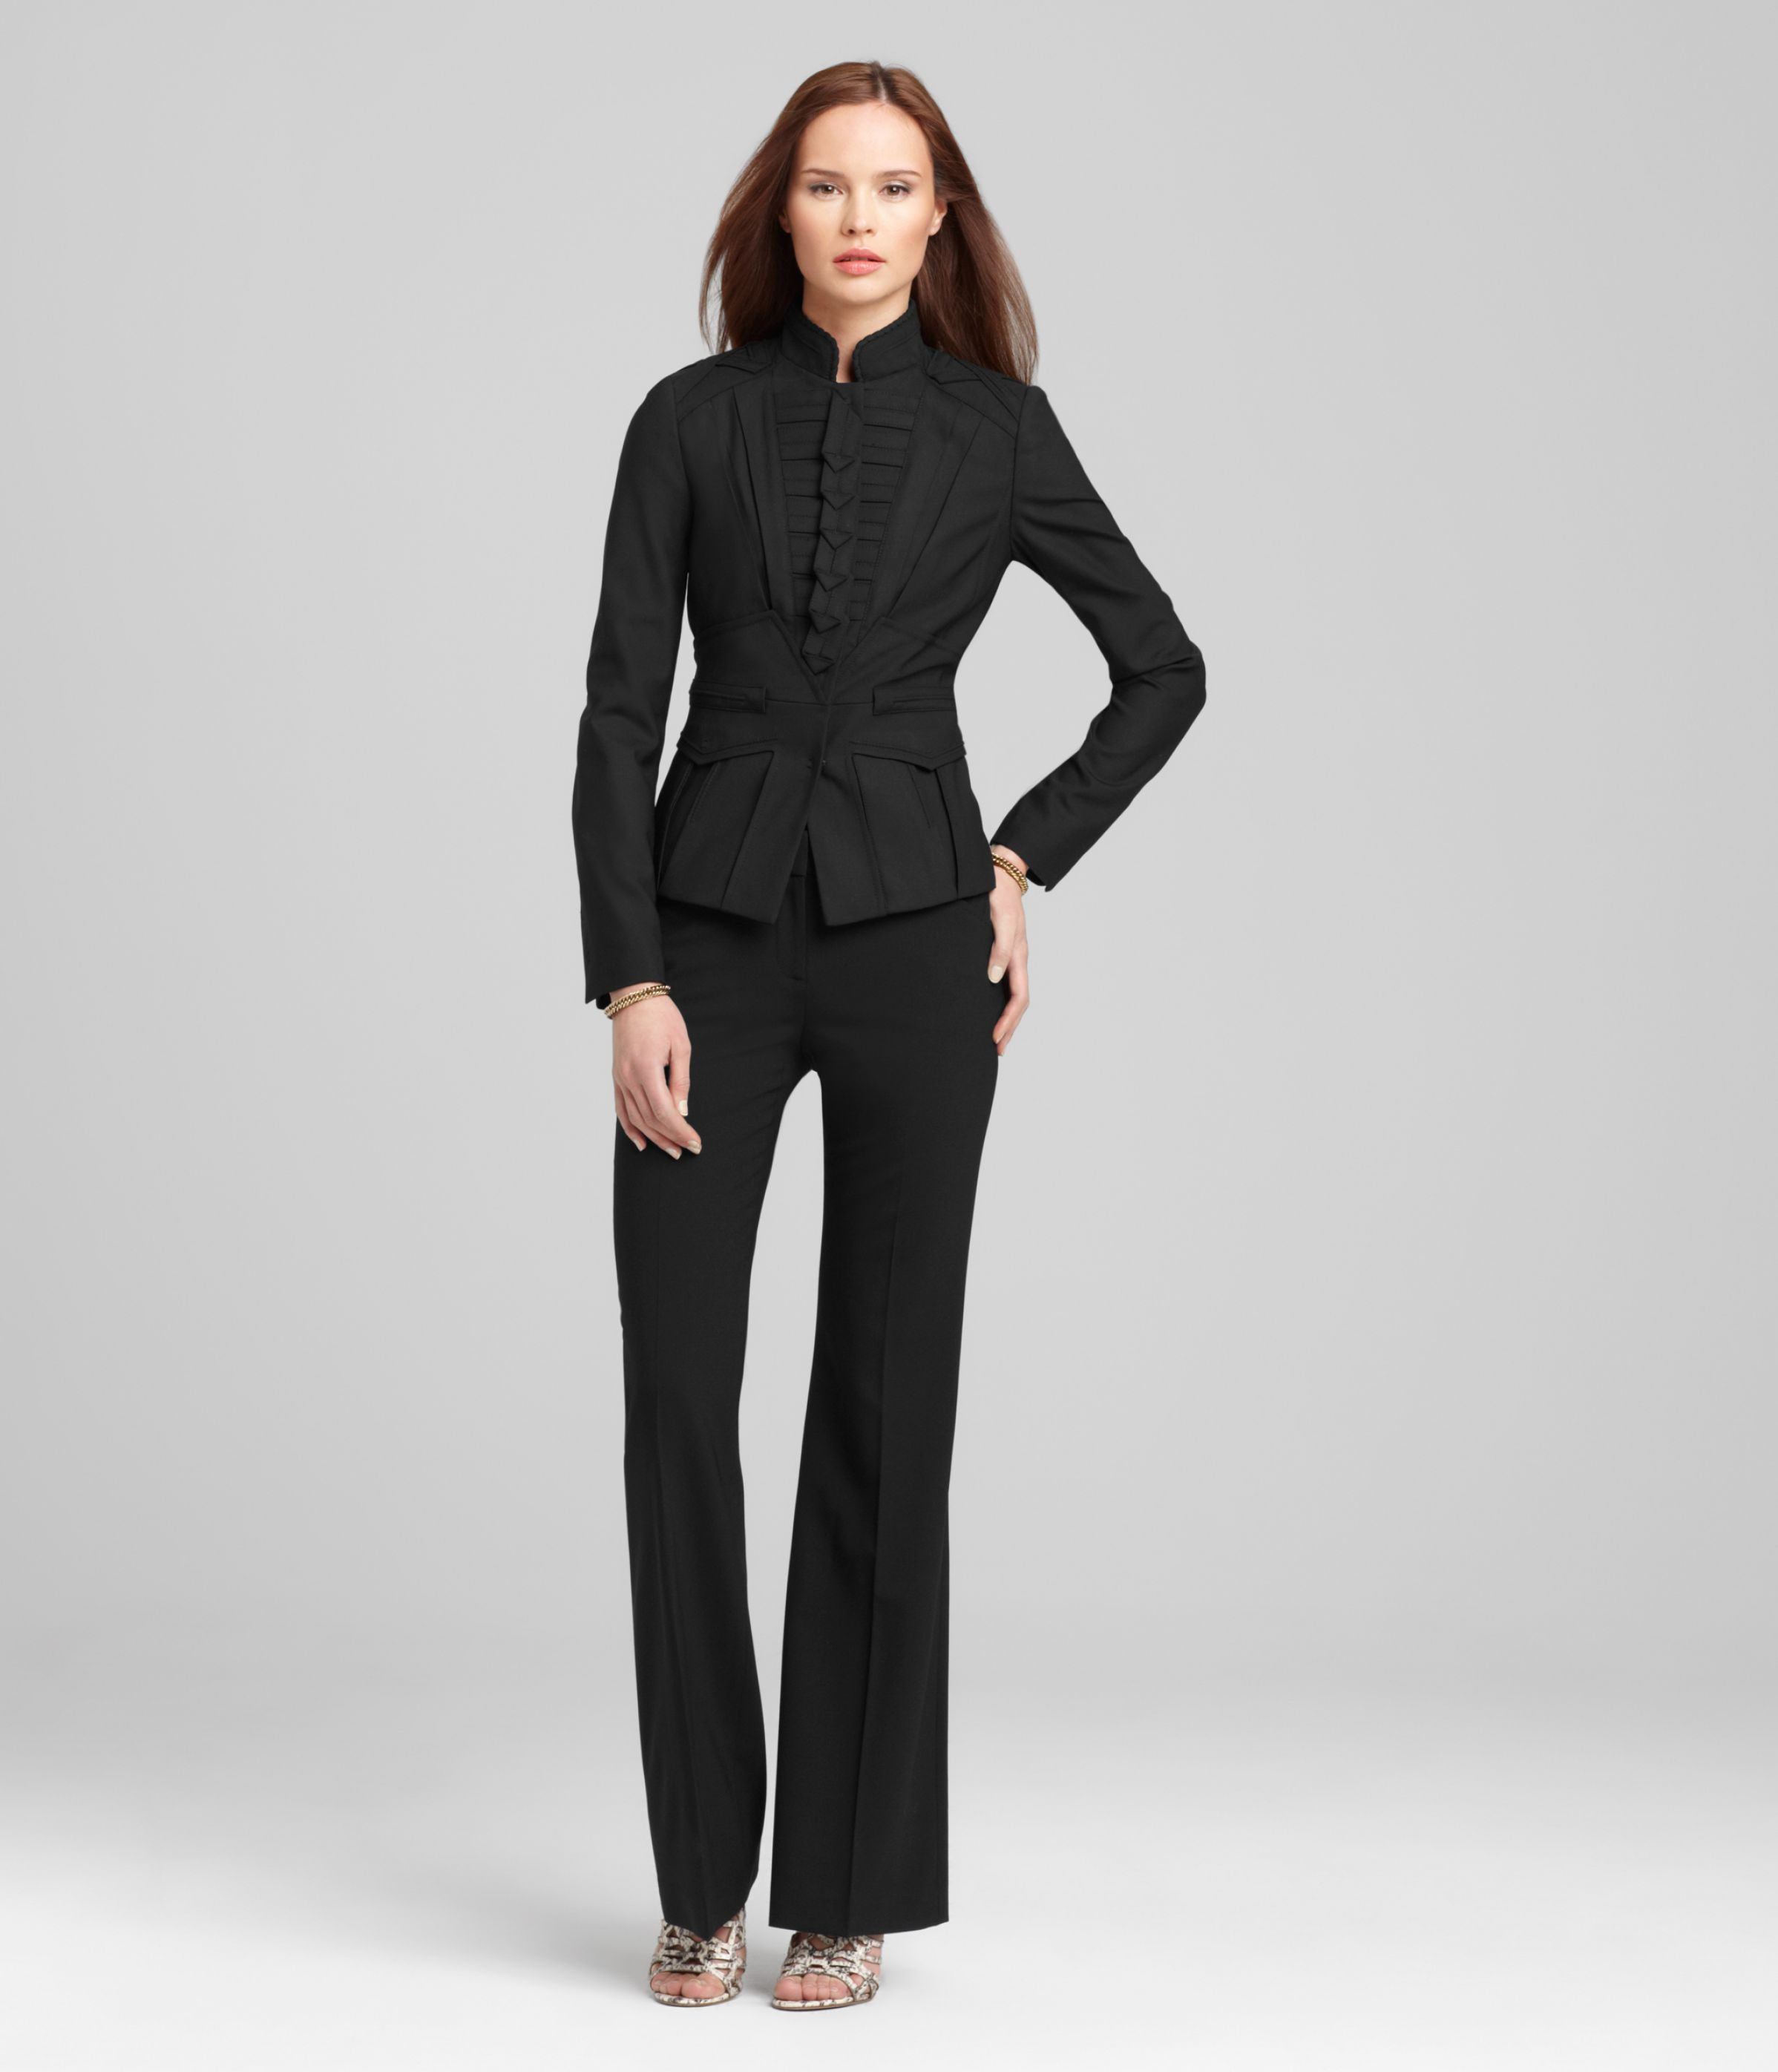 f0cd4acbc313d2 Elie Tahari suit. Ruined with these shoes | Career looks | Fashion ...